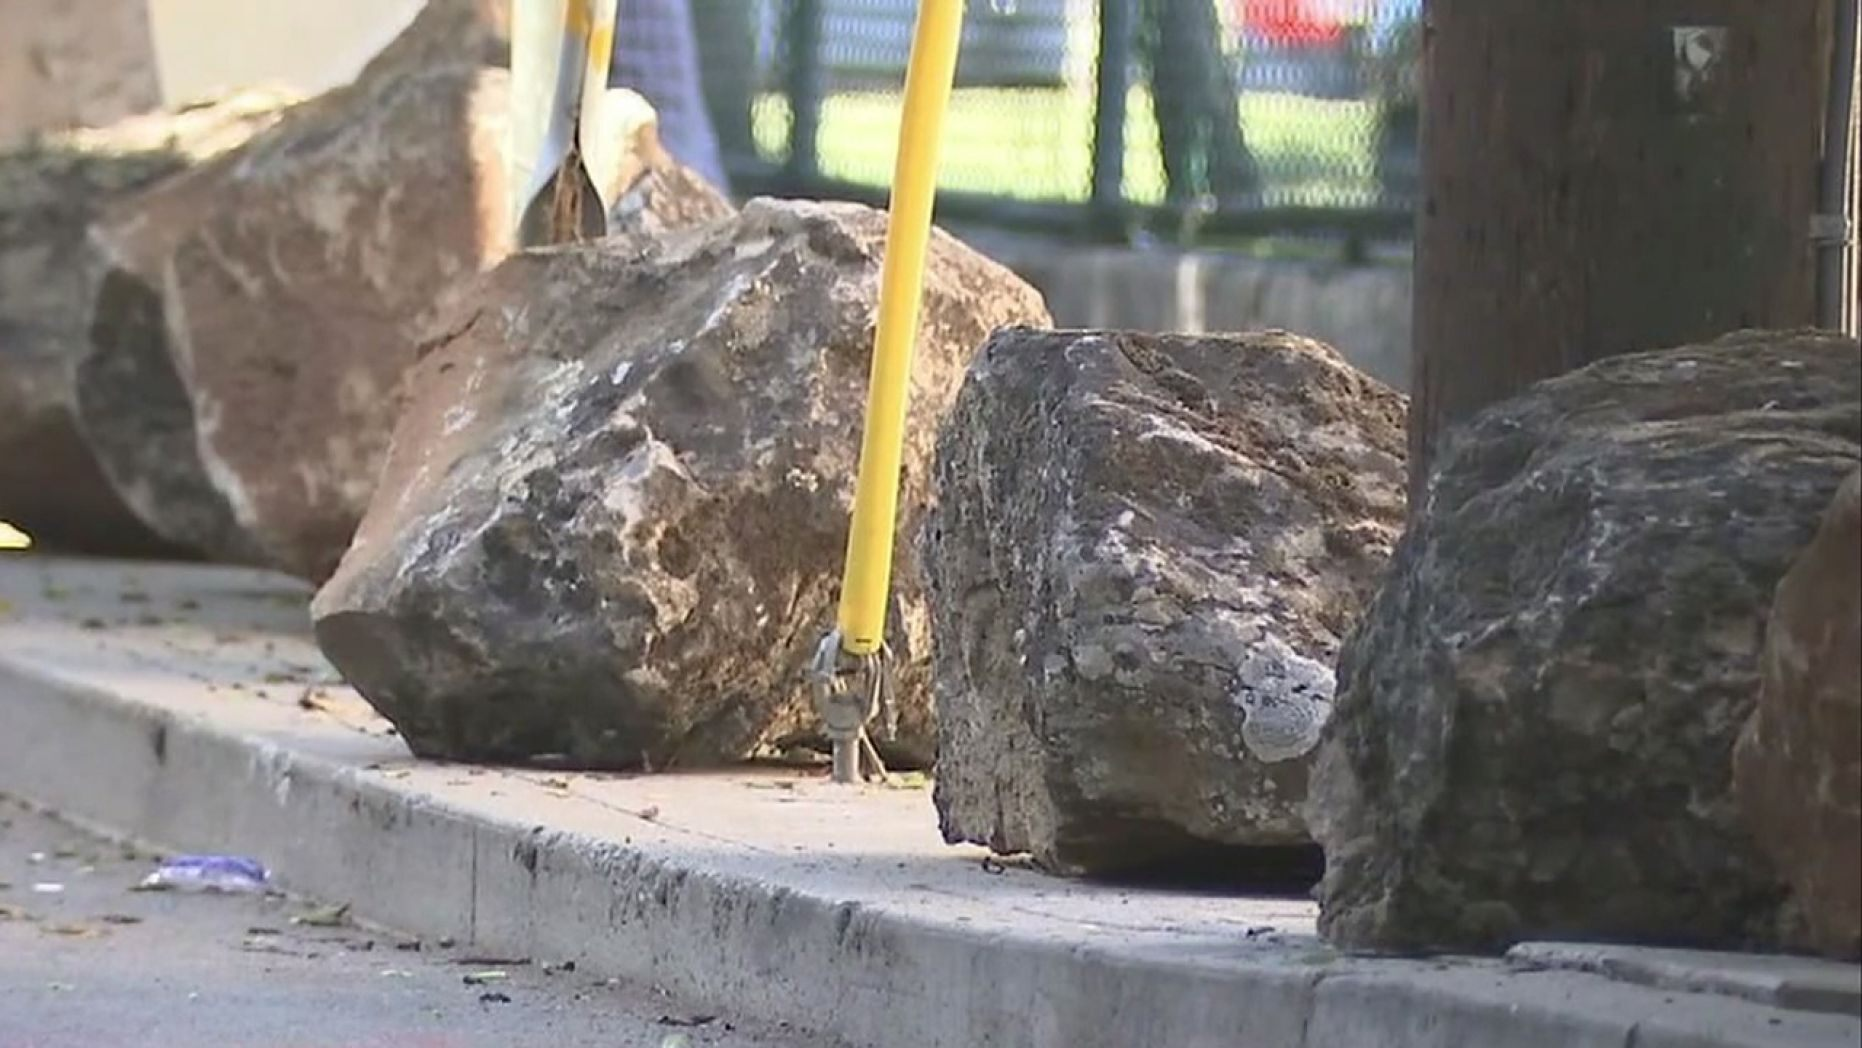 A group of neighbors in San Francisco has had two dozen boulders placed along a residential road to deter people from camping out.